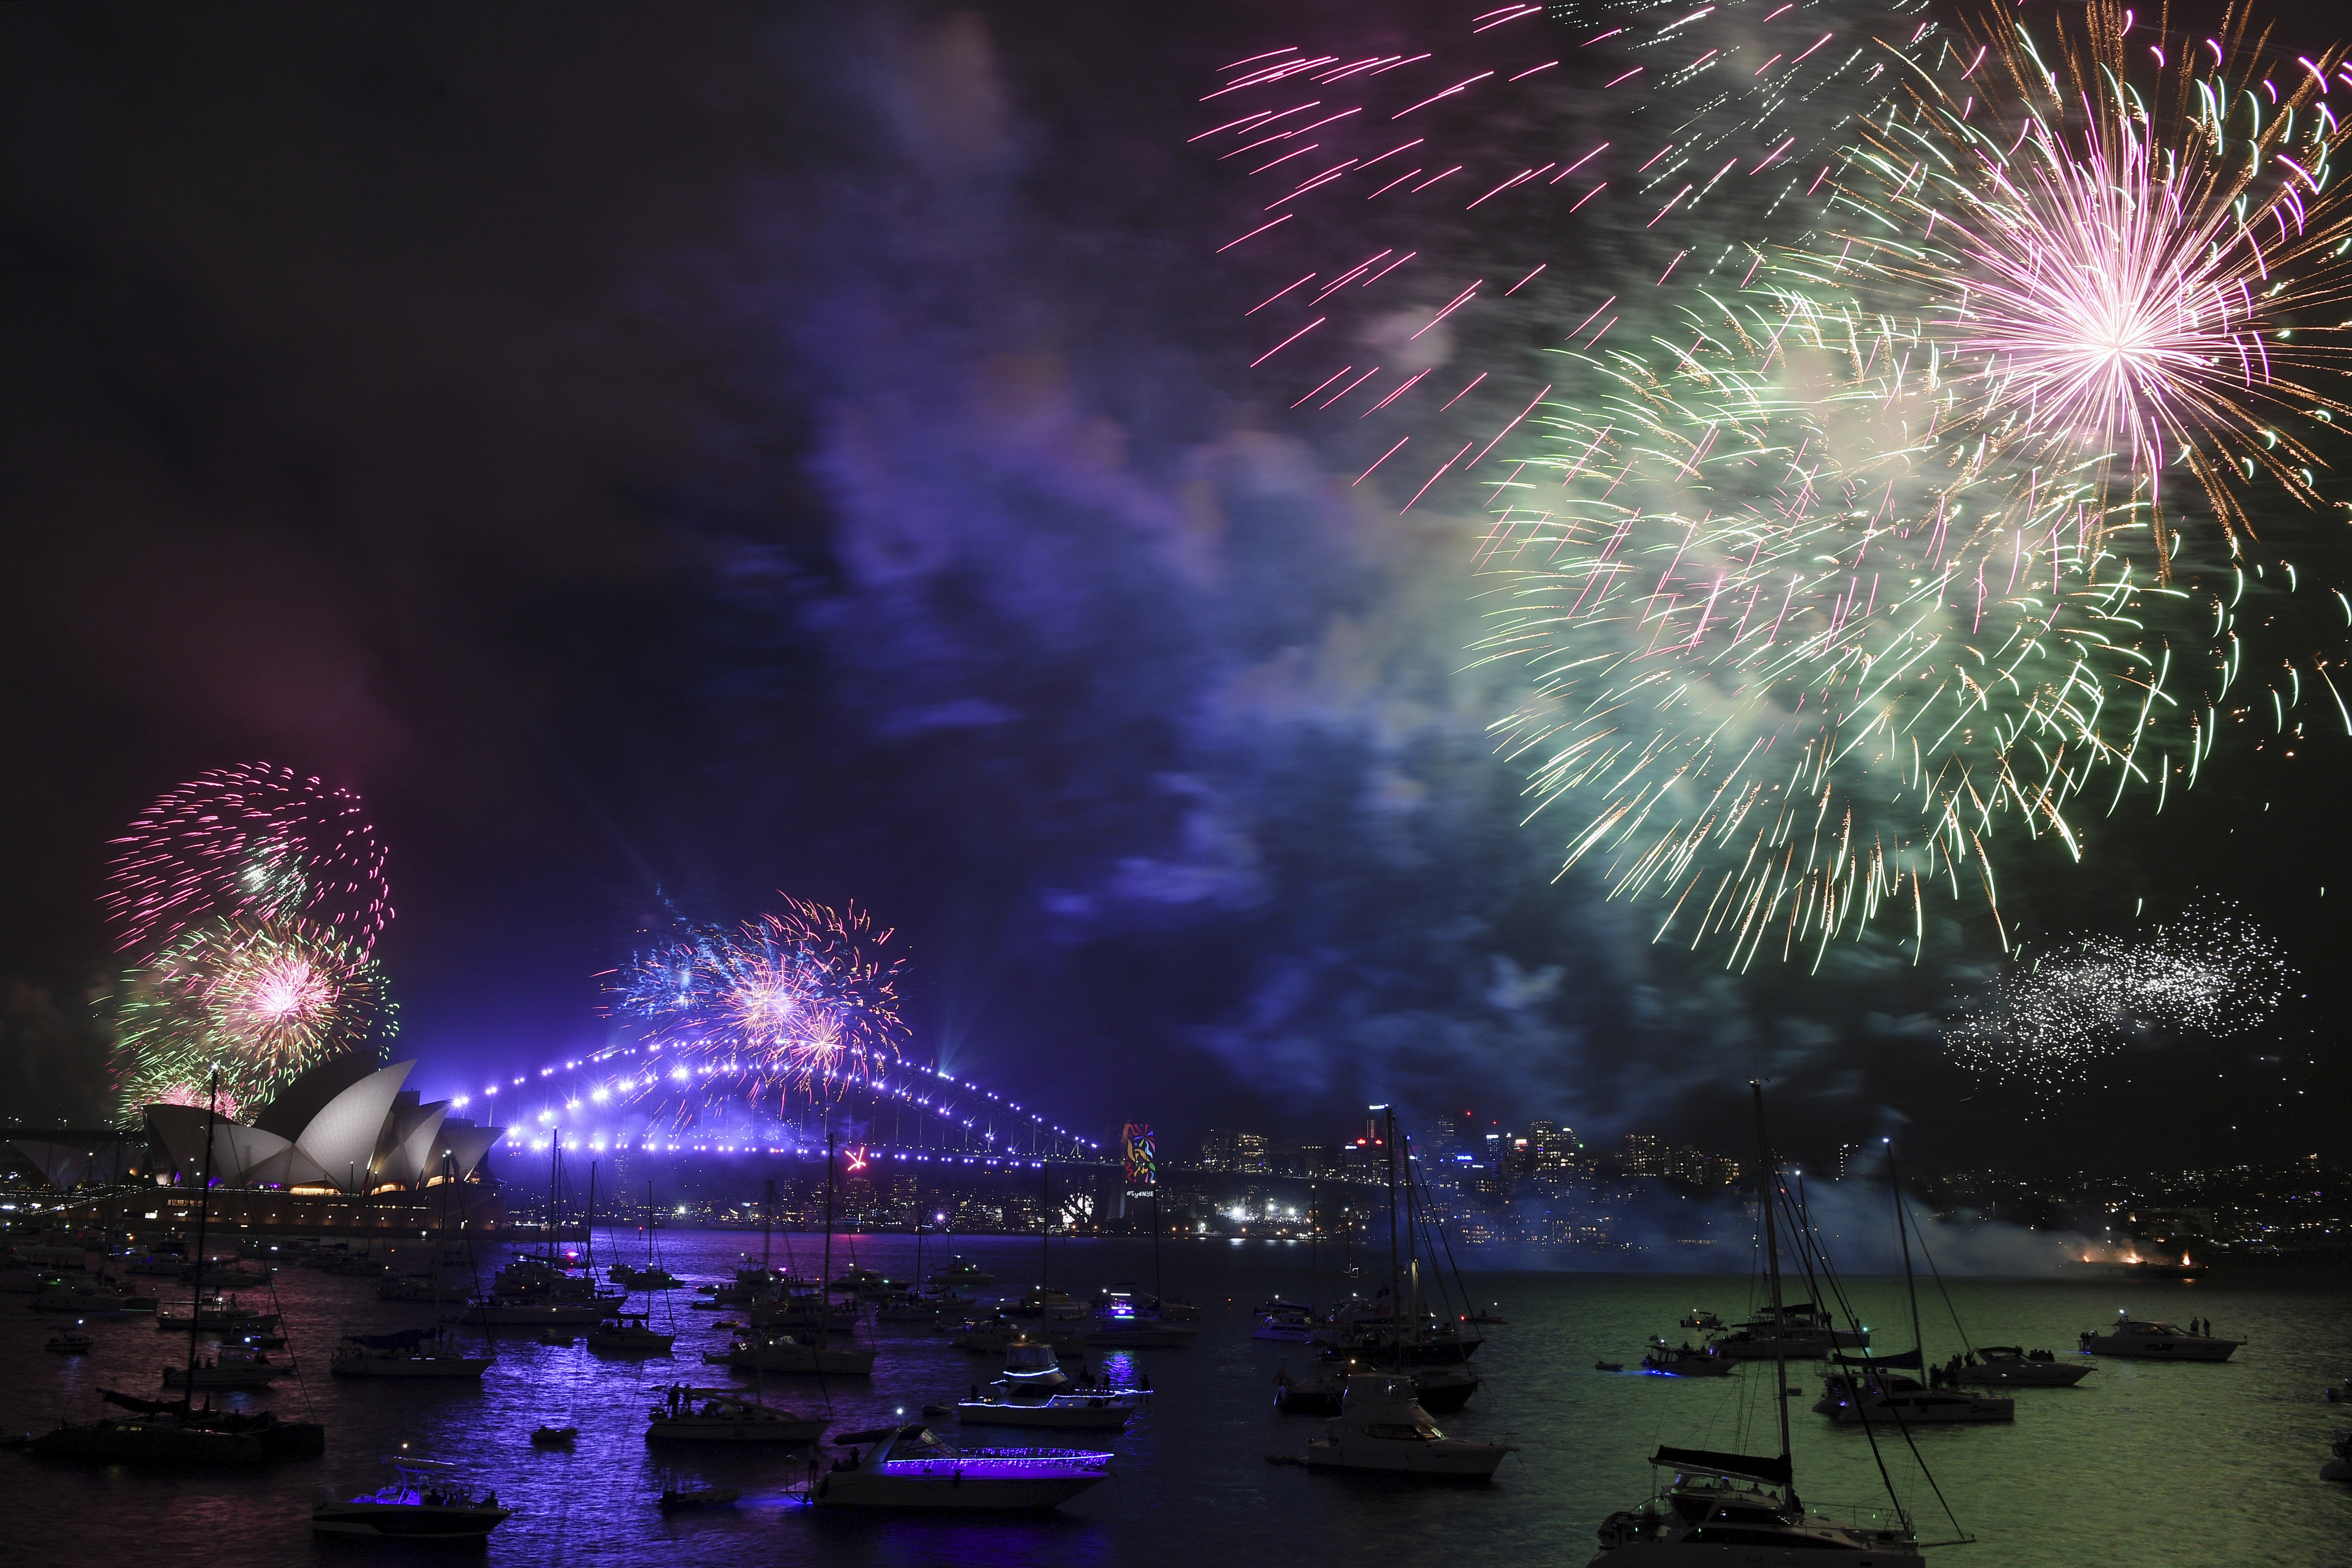 <div class='meta'><div class='origin-logo' data-origin='AP'></div><span class='caption-text' data-credit='David Moir/AAP Image via AP'>Fireworks explode over Sydney Harbour during New Year's Eve celebrations in Sydney, Sunday, Dec. 31, 2017.</span></div>